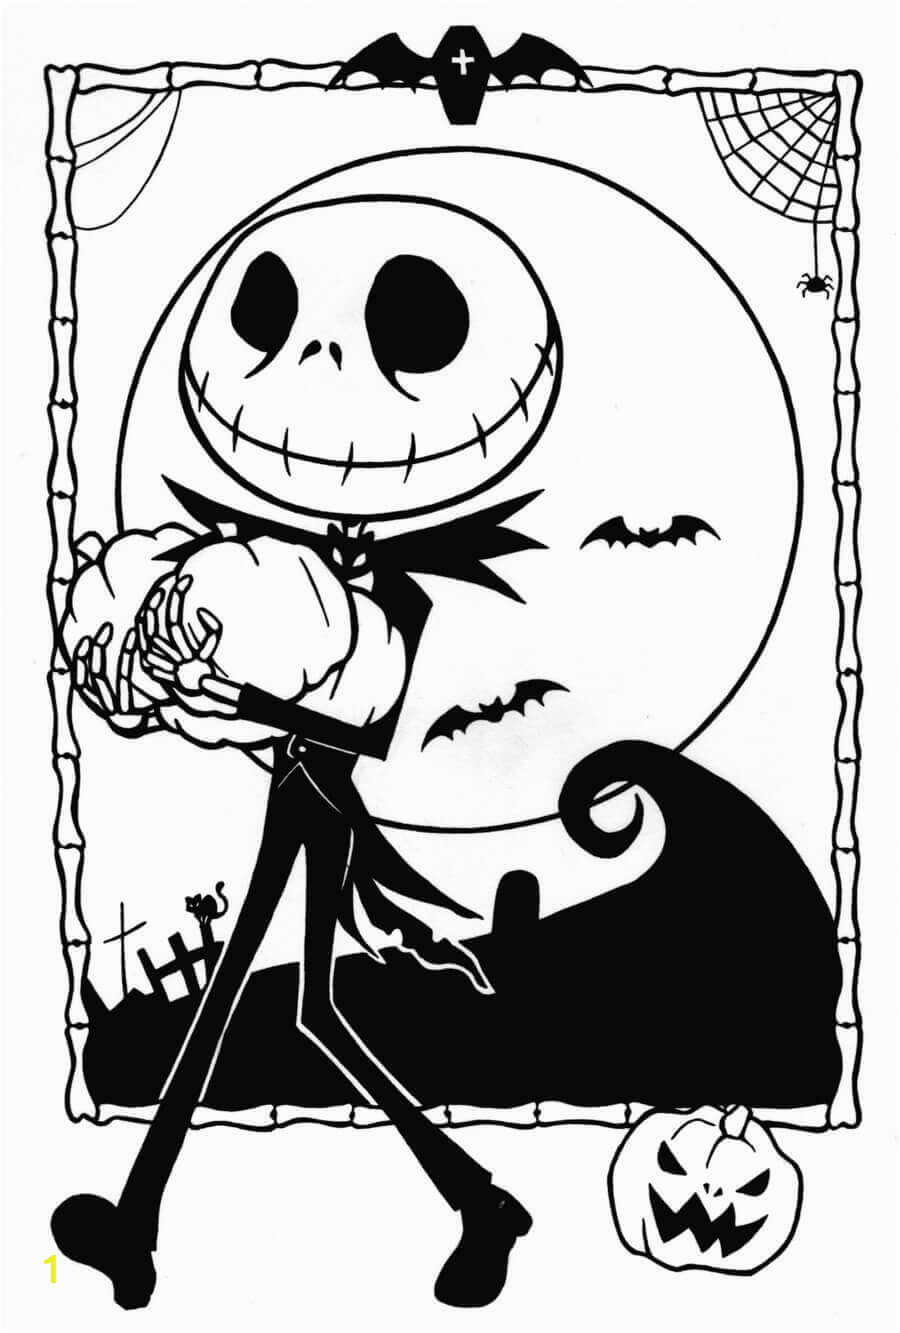 Jack Skellington Nightmare before Christmas Coloring Pages 20 Free the Nightmare before Christmas Coloring Pages to Print